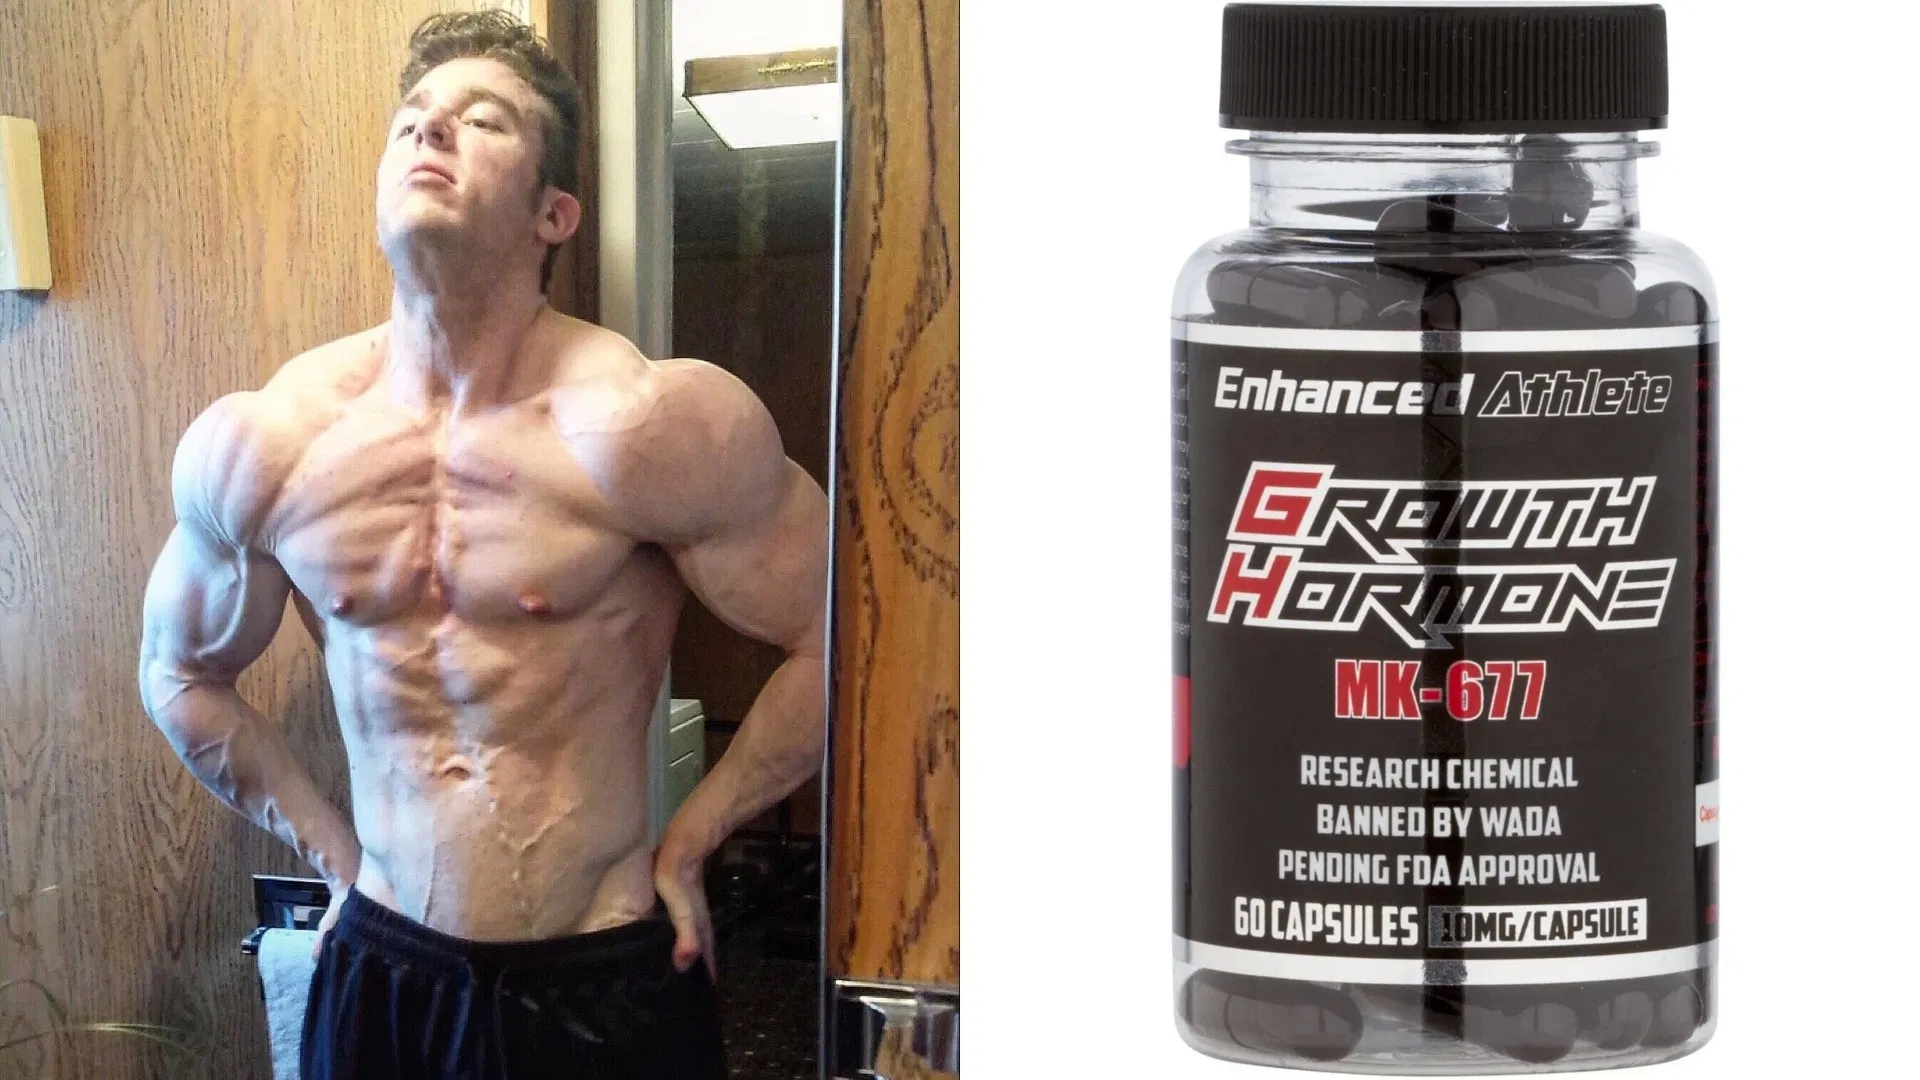 SARMS are synthetic compounds that generate effects similar to those of testosterone